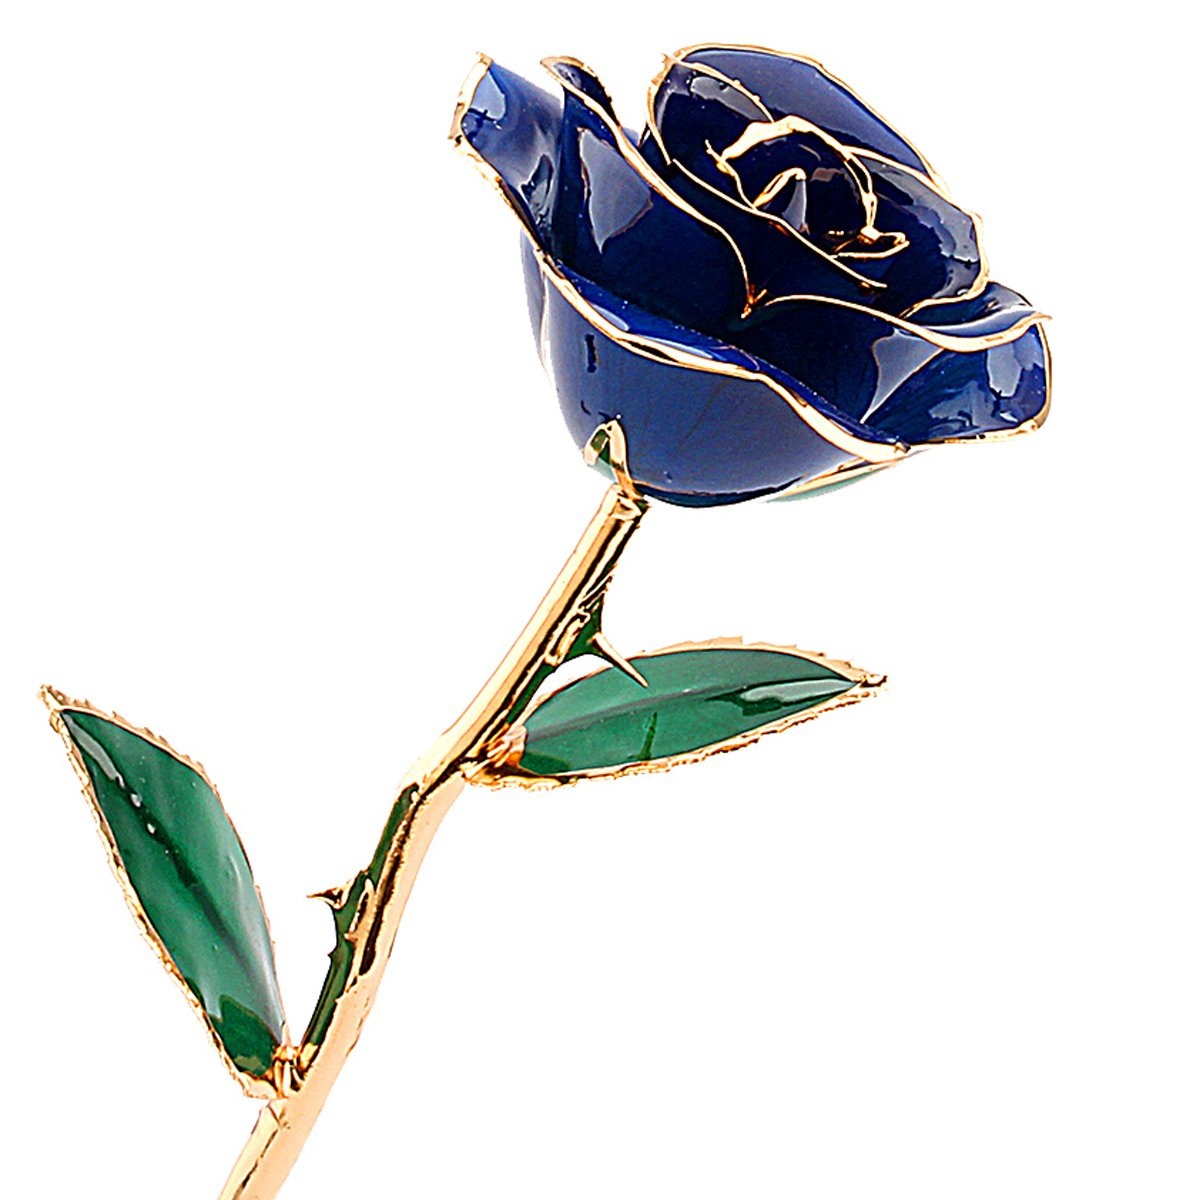 ZJchao Love Forever Long Stem Dipped 24k Gold Real Trim Rose Best Gifts For Girlfriend Wife Lady Mother Grandmother Daughter Granddaughter FOR Valentine's Day, Mother's Day, Anniversary, Birthday Gift In Gift Box (Golden) Mother's Day